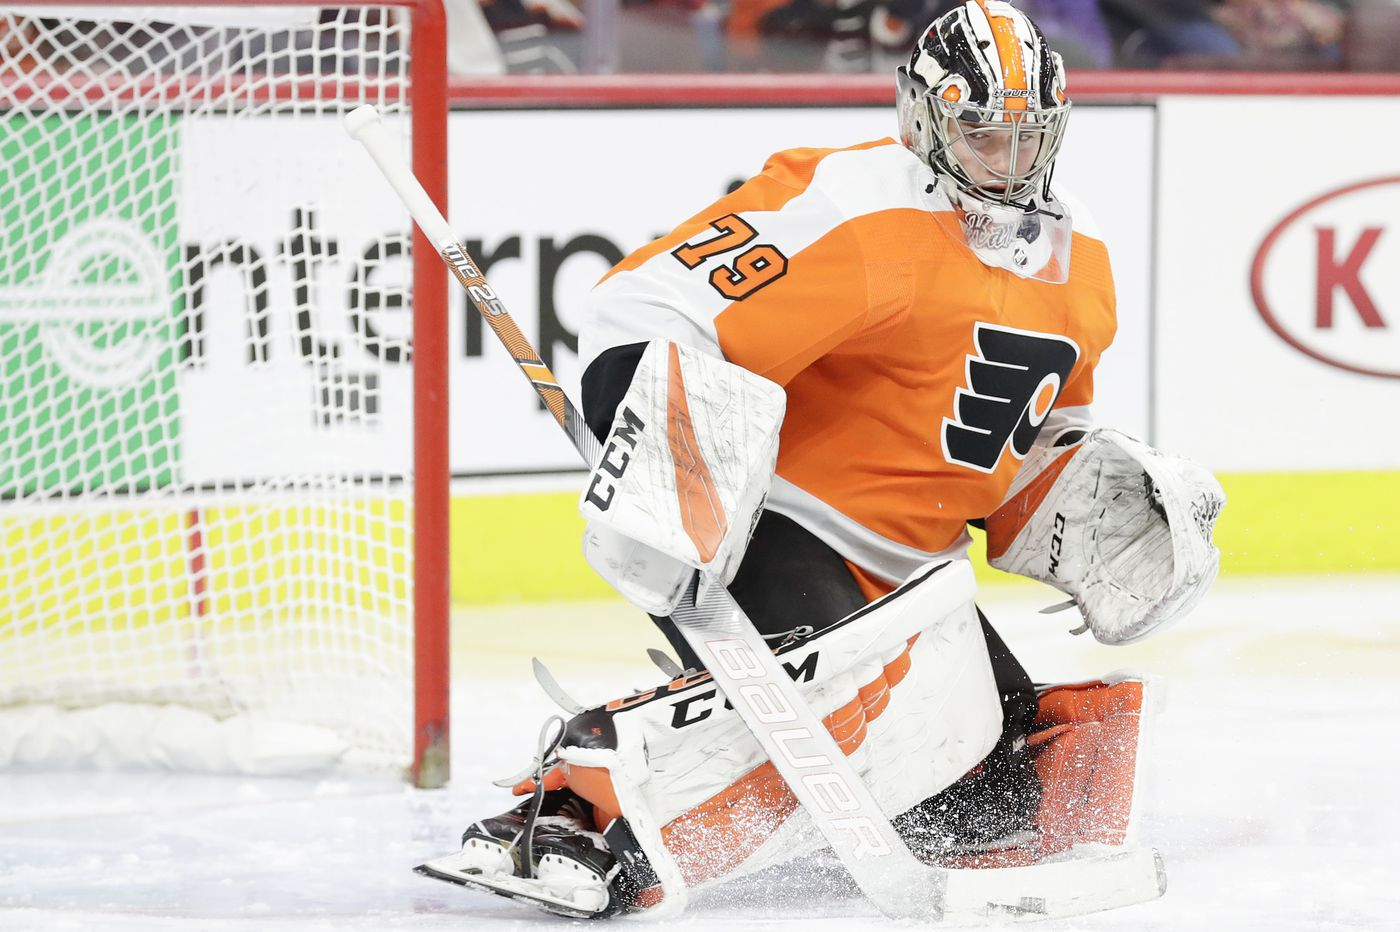 Carter Hart making first start in three weeks with Flyers in virtual must-win situation against Capitals